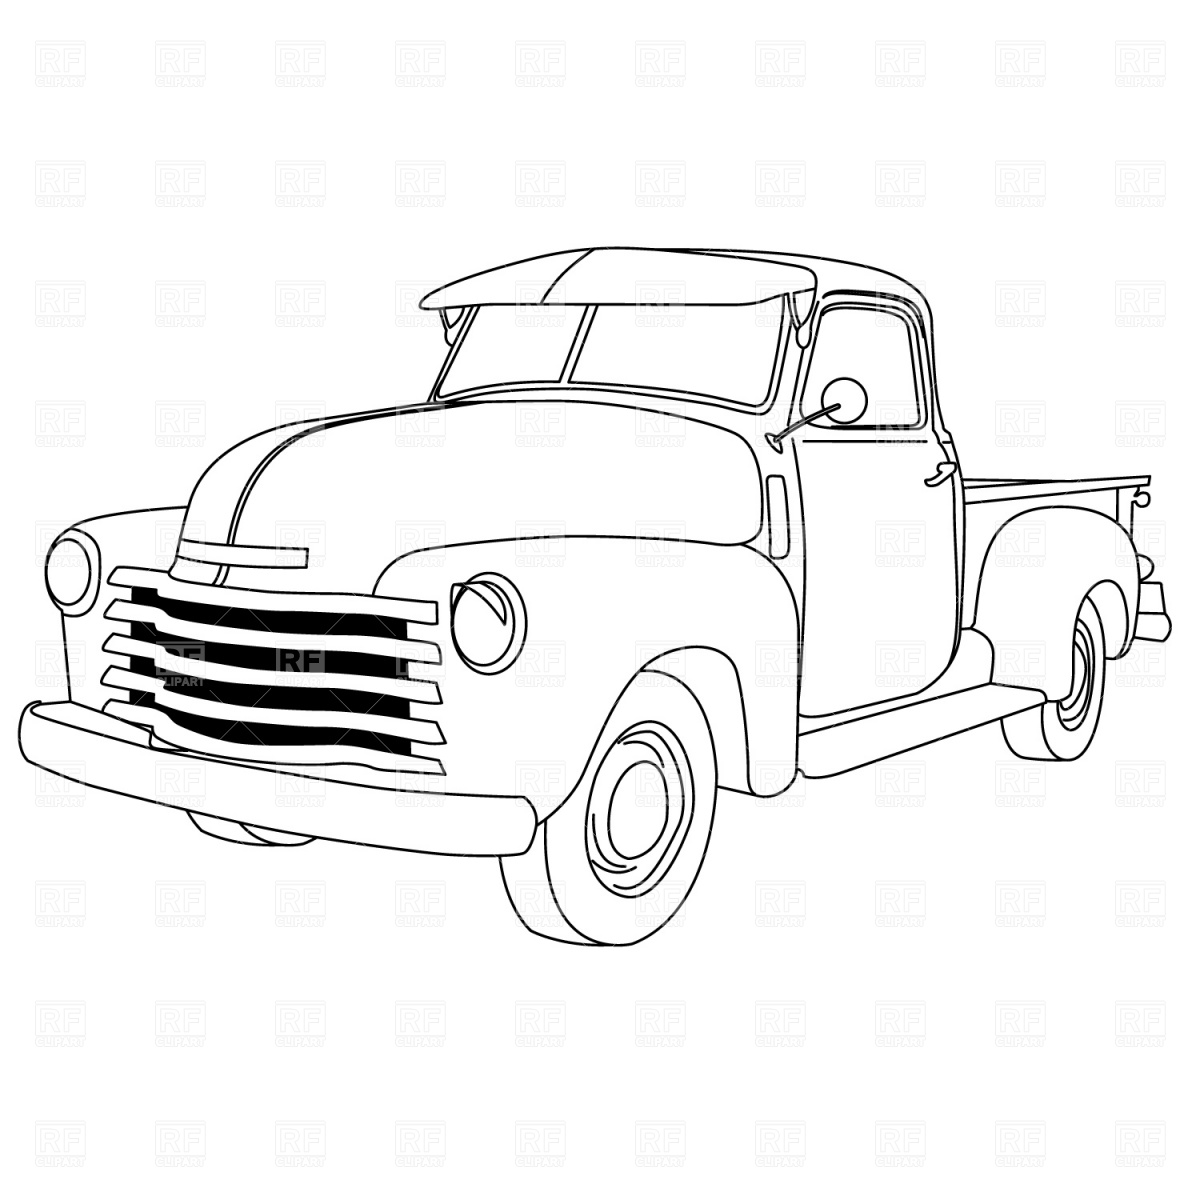 Ford clipart antique truck Old old up old truck